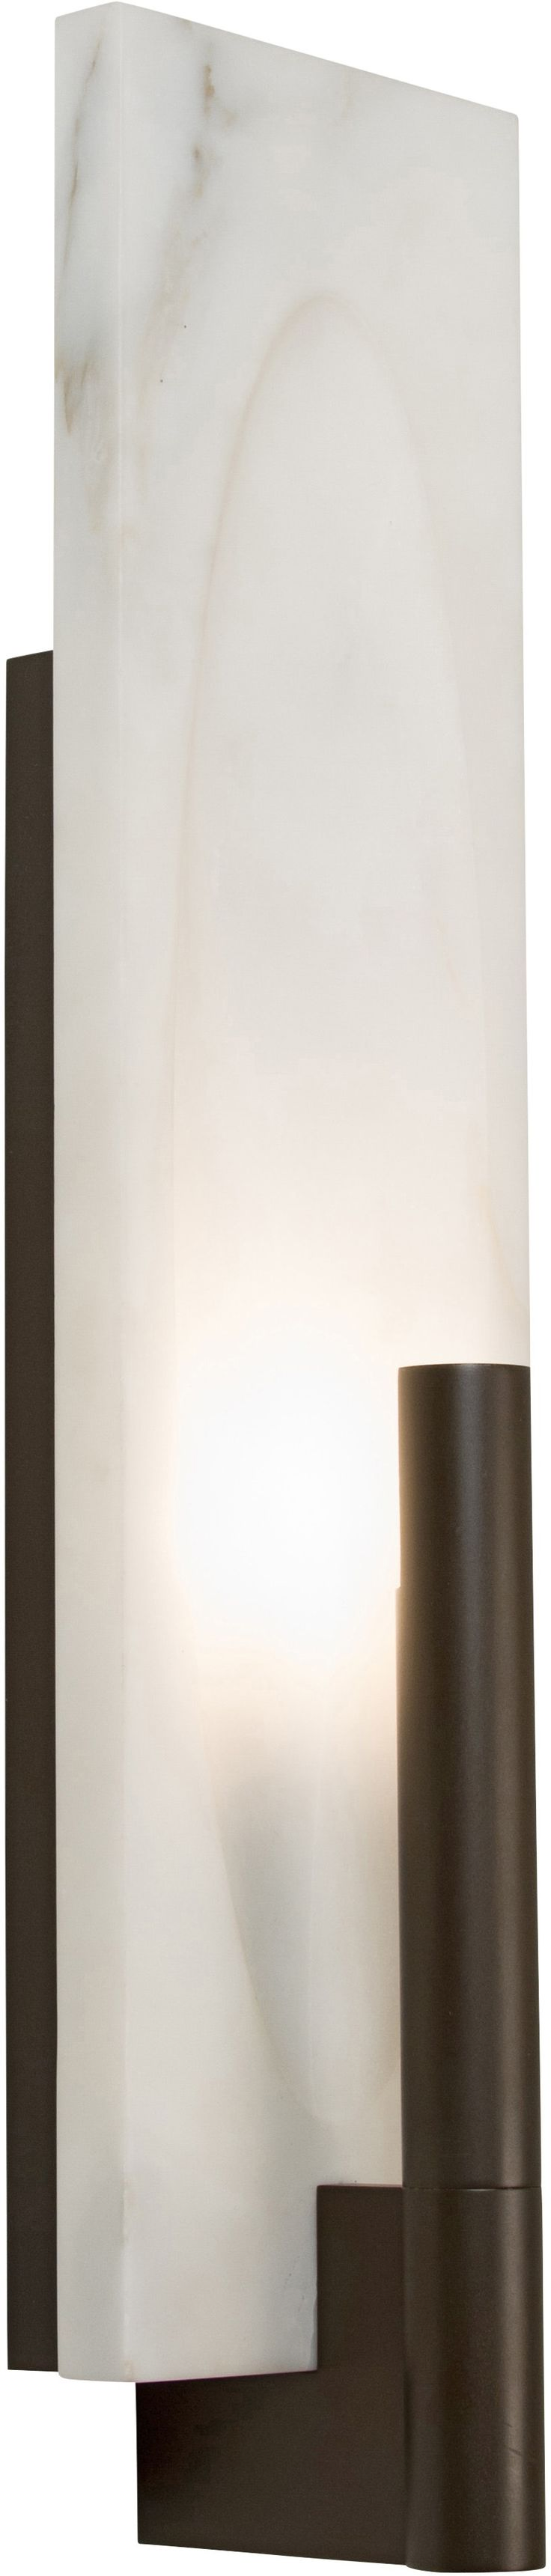 Buy Aiden Sconce by Marian Jamieson - Made-to-Order designer Lighting from Dering Hall's collection of Mid-Century / Modern Transitional Wall Lighting.